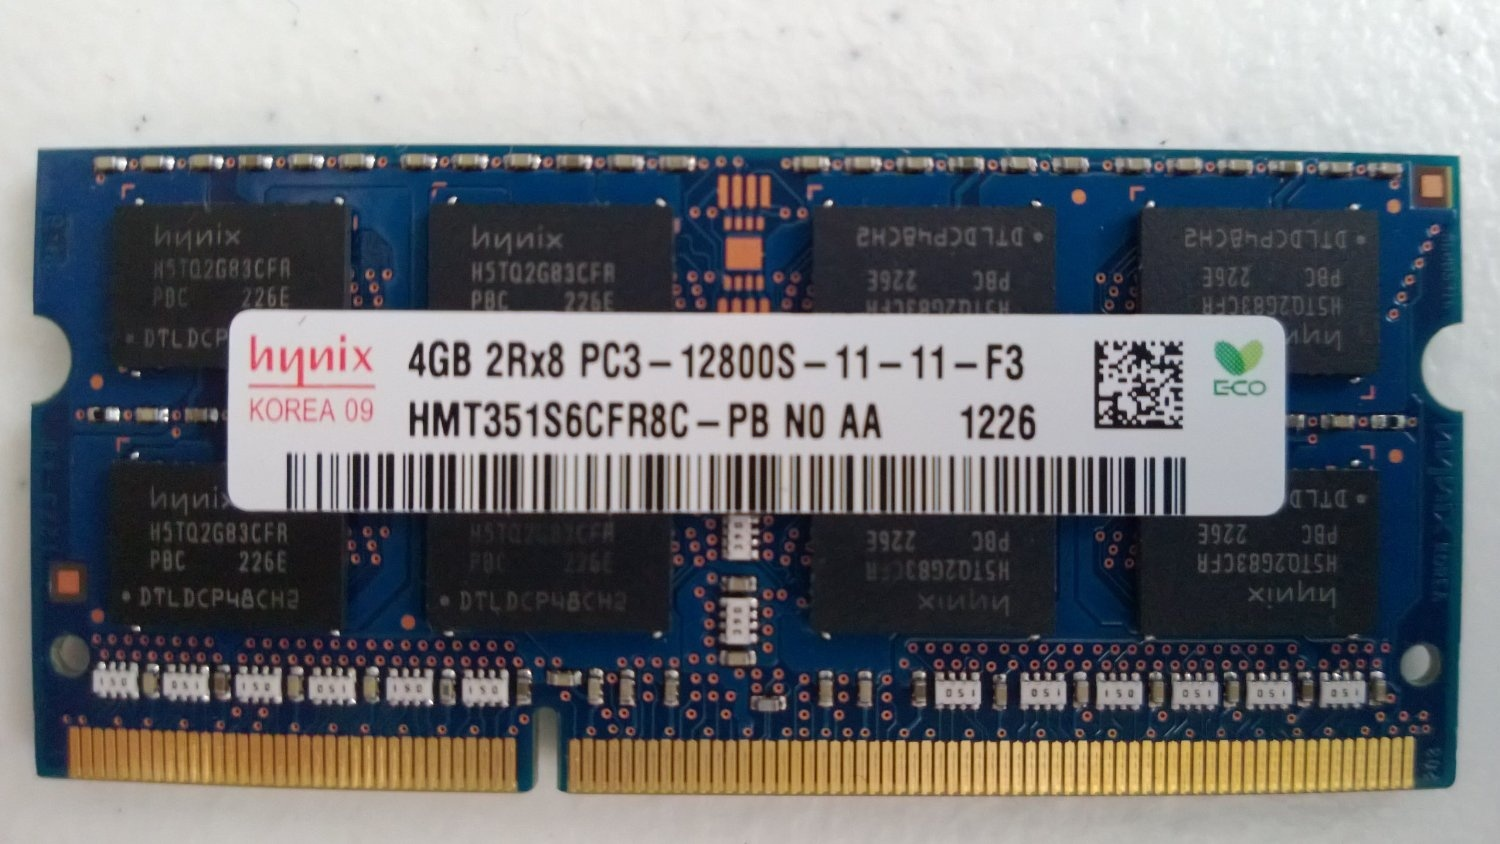 HMT351S6CFR8C-PB Hynix 4GB PC3-12800 DDR3 1600MHz non-ECC Unbuffered